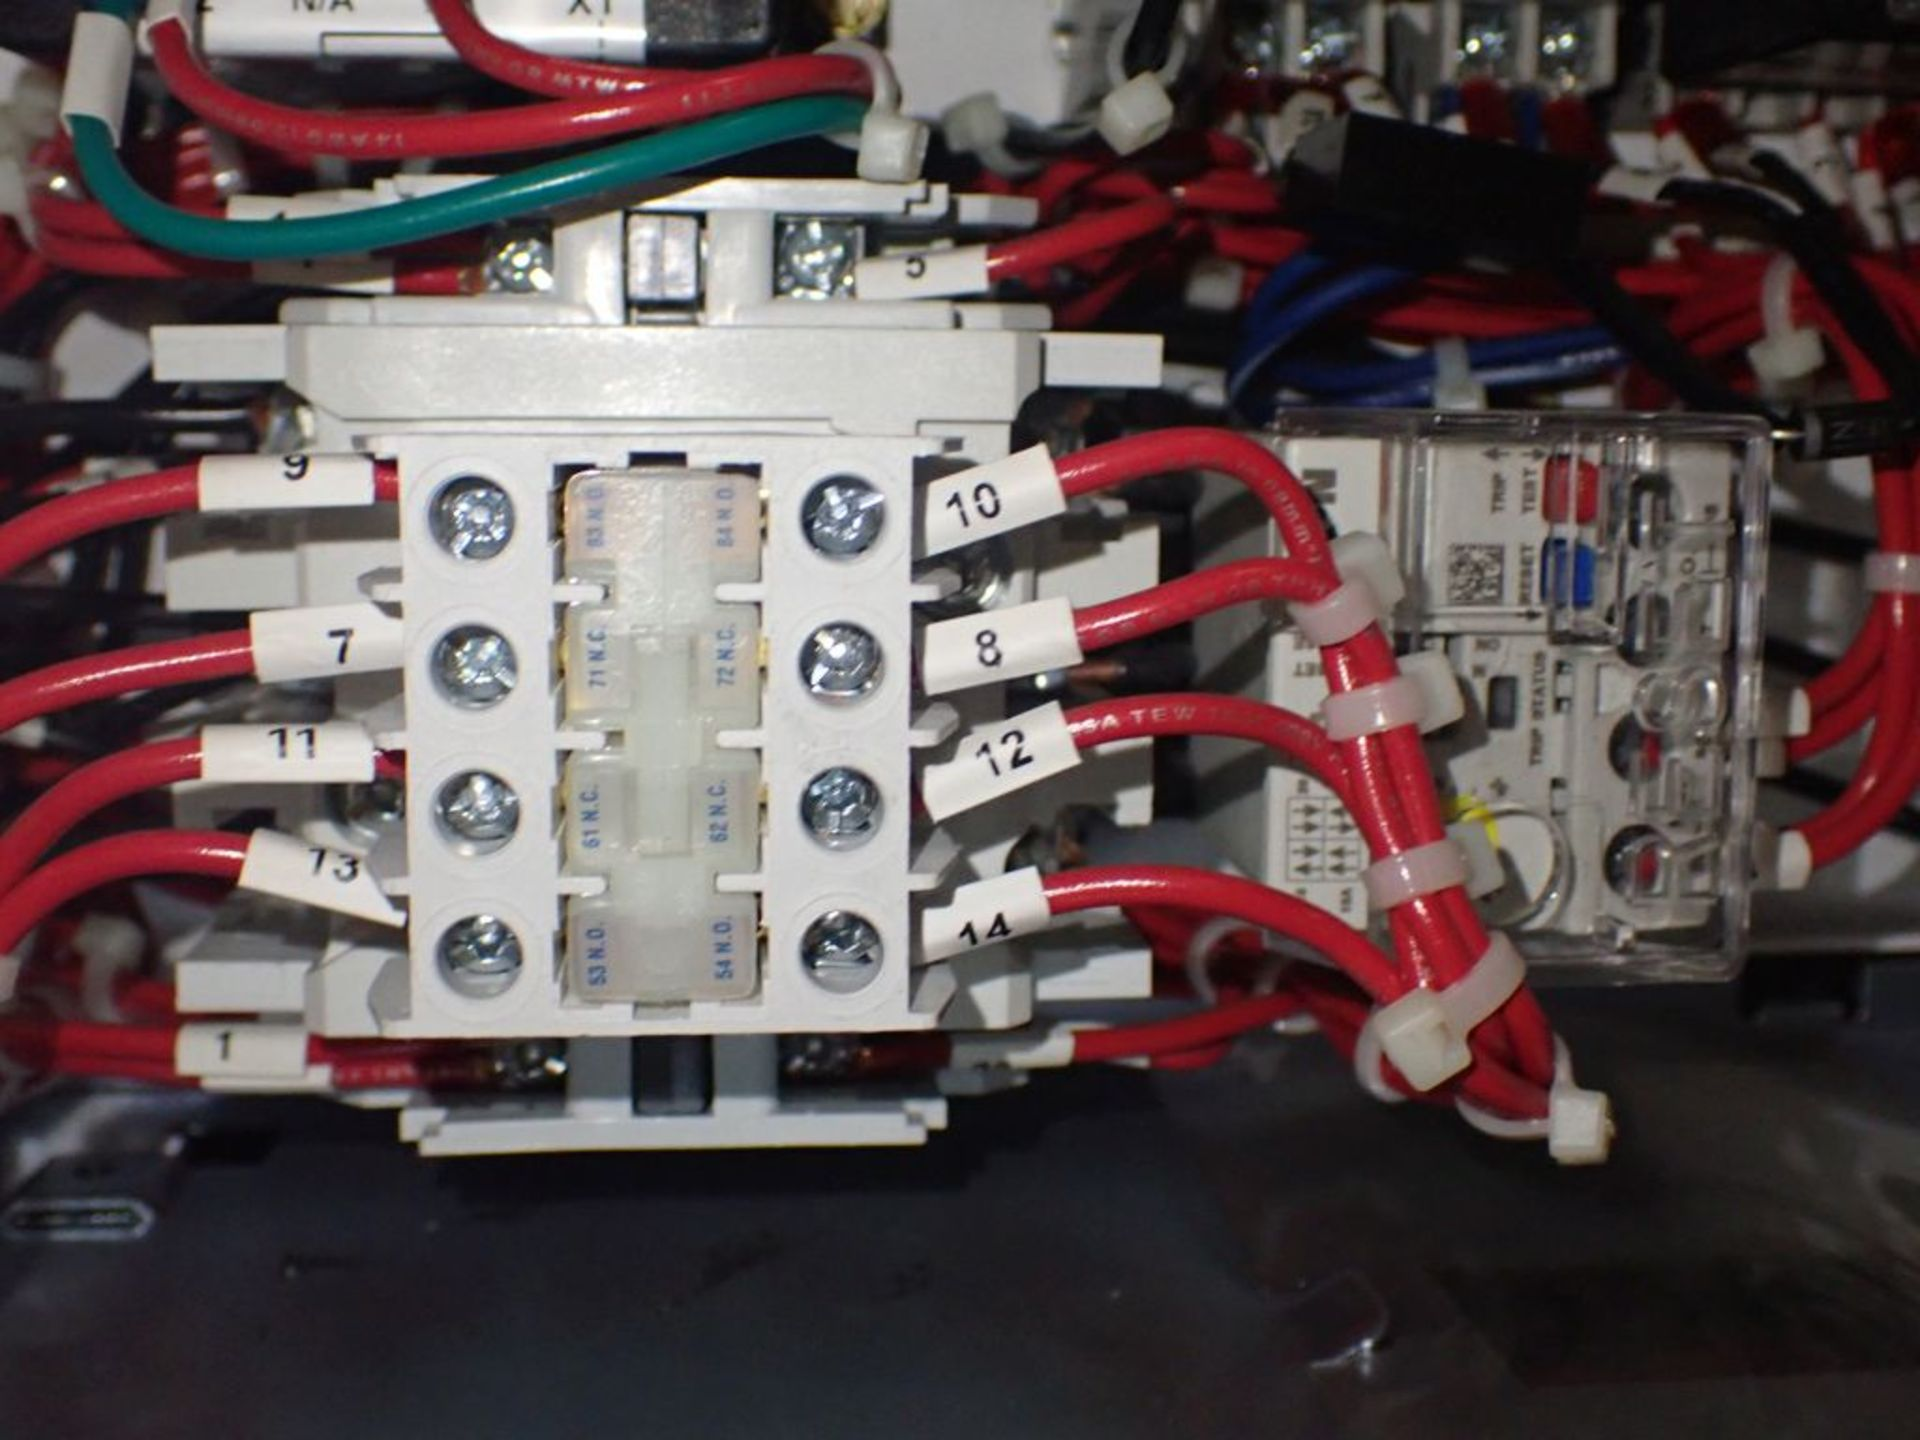 Eaton Freedom Flashgard Motor Control Center w/Components | (5) F206-15A-10HP; (4) F206-30A-10HP; ( - Image 17 of 84